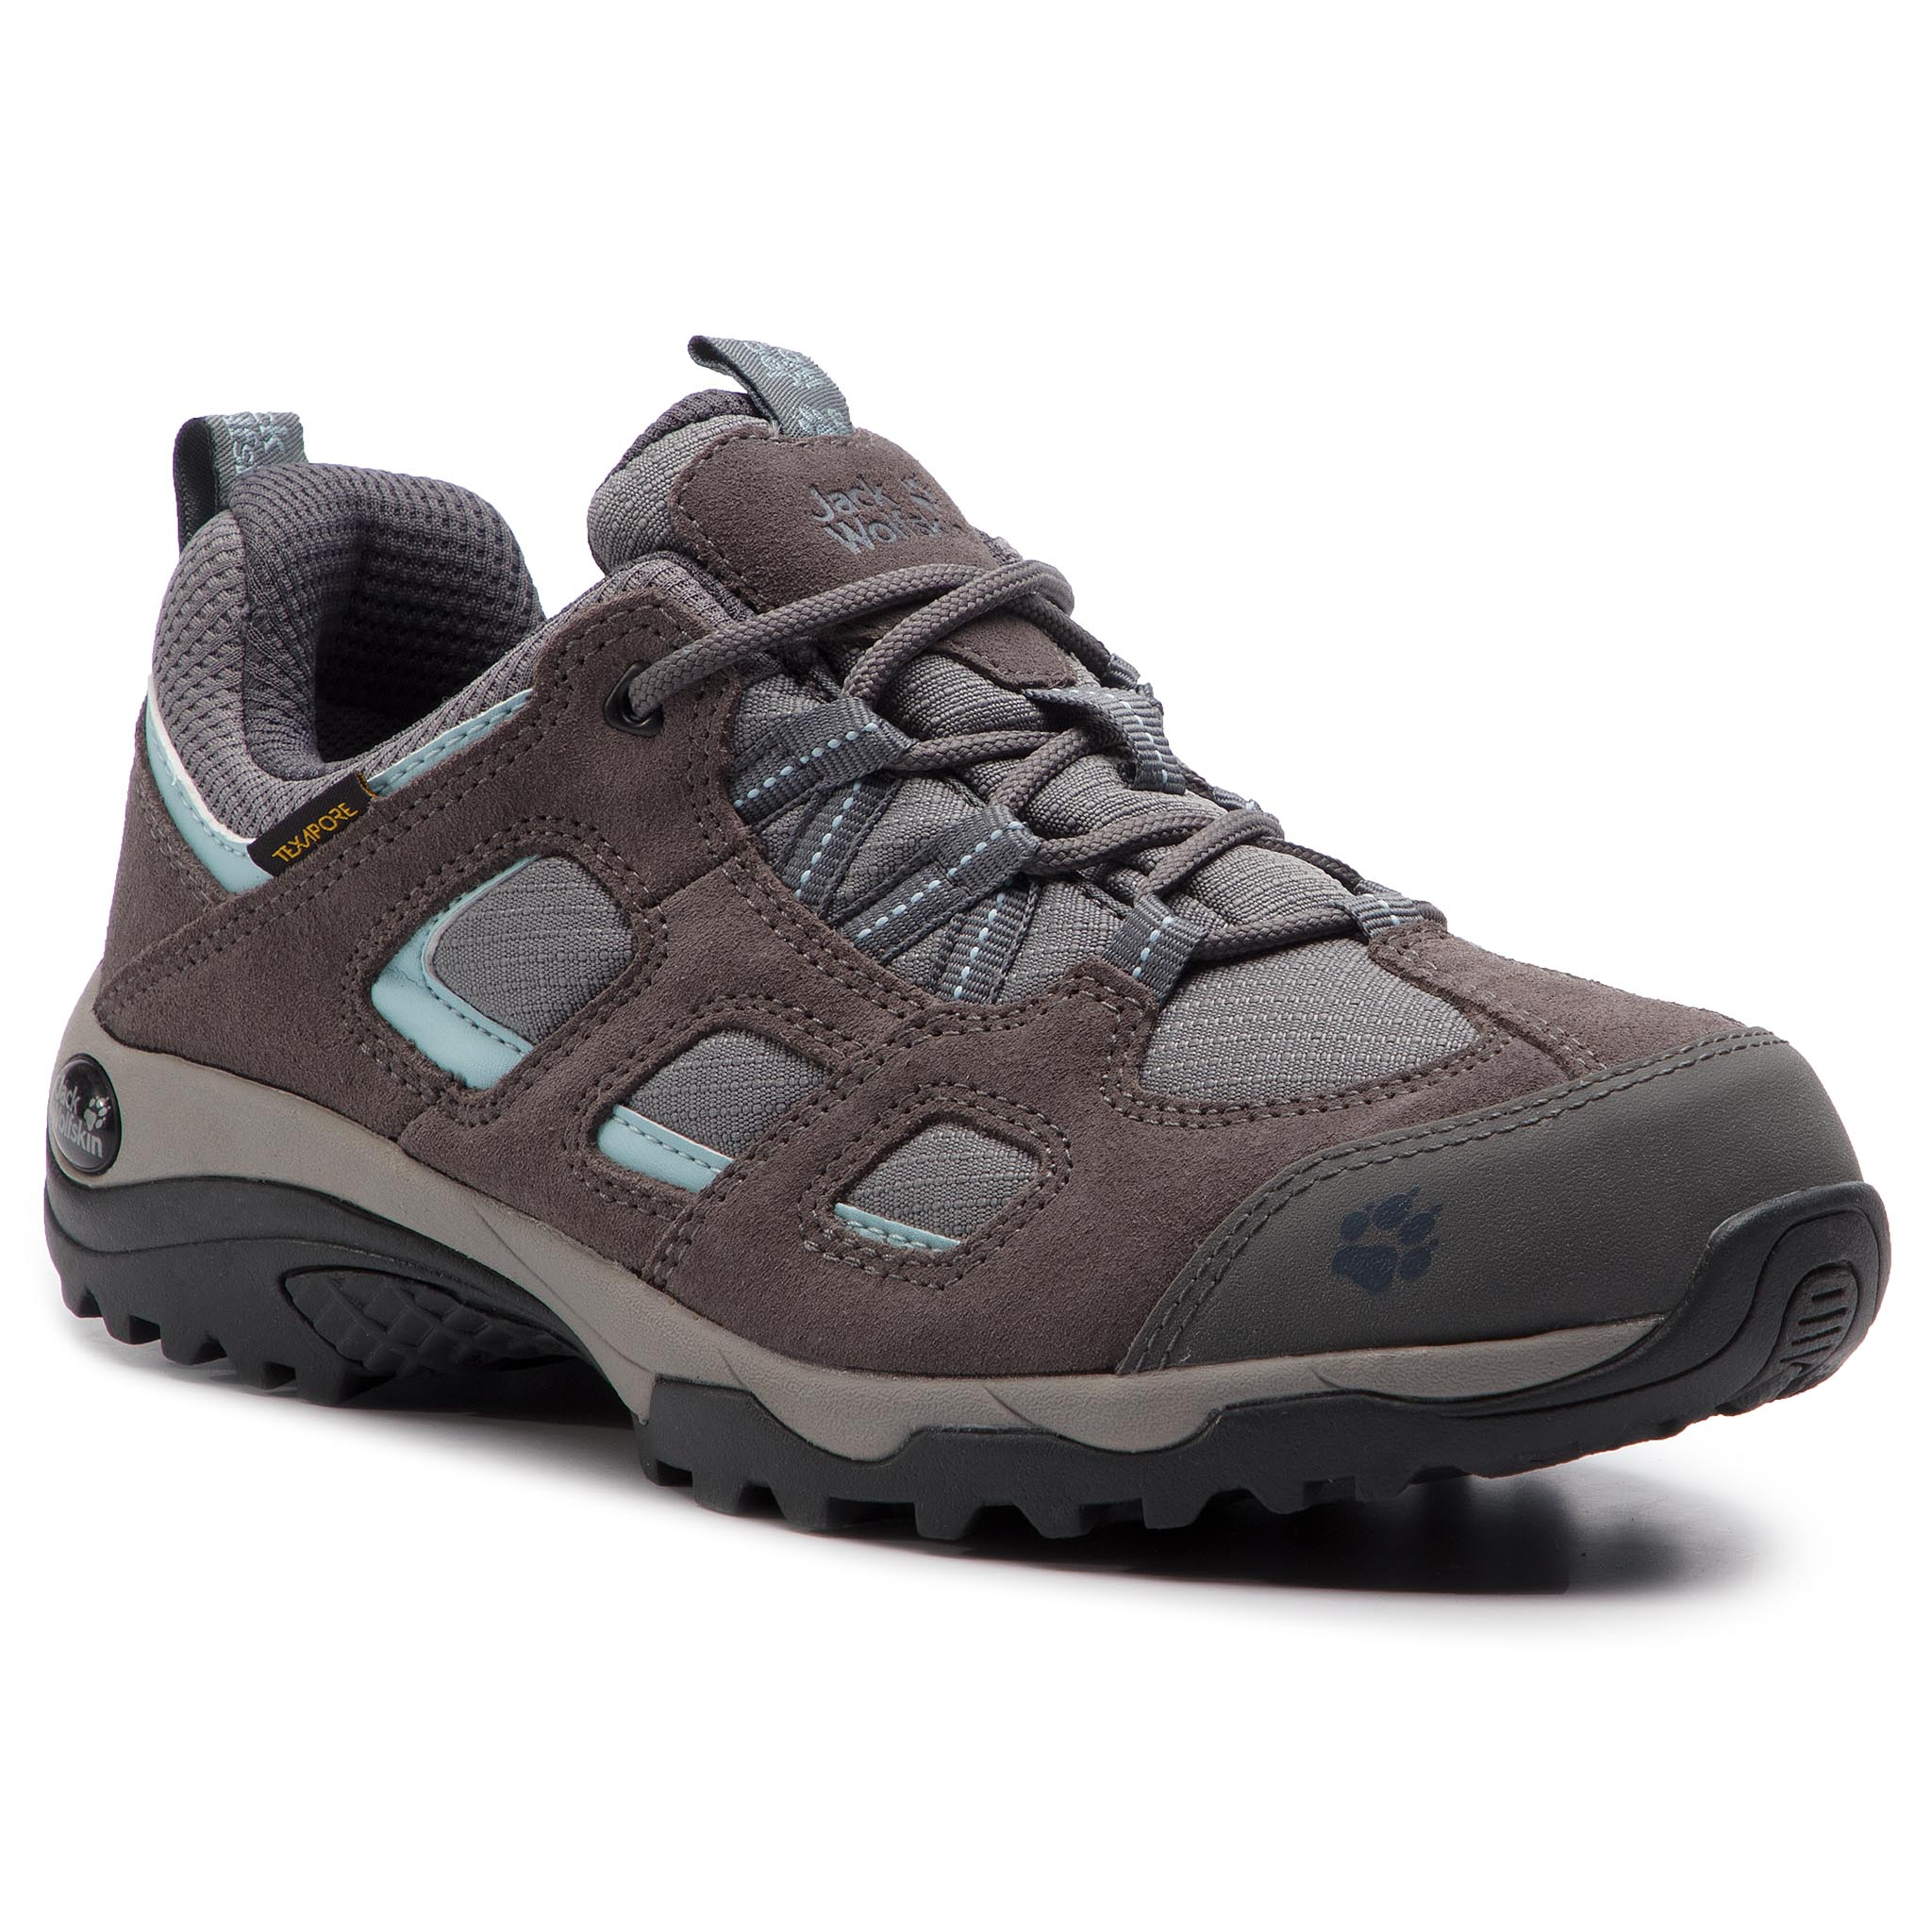 Trekkings Jack Wolfskin - Vojo Hike 2 Texapore Low W 4032391 Tarmac Grey imagine epantofi.ro 2021